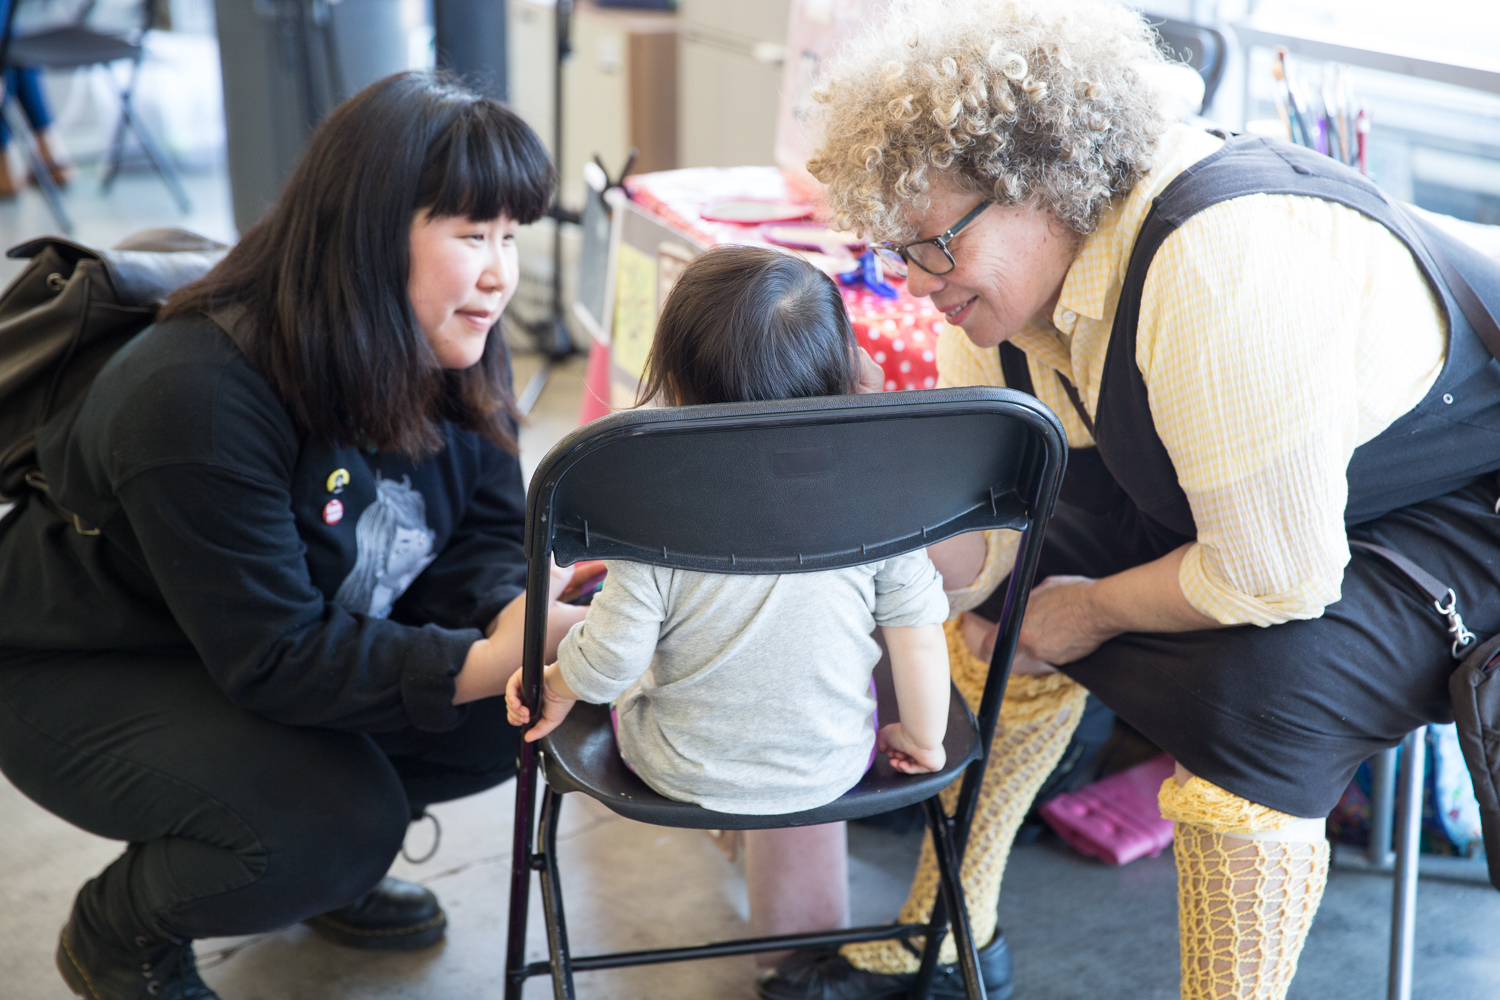 Two adults crouch on either side of a toddler seated in a folding chair.